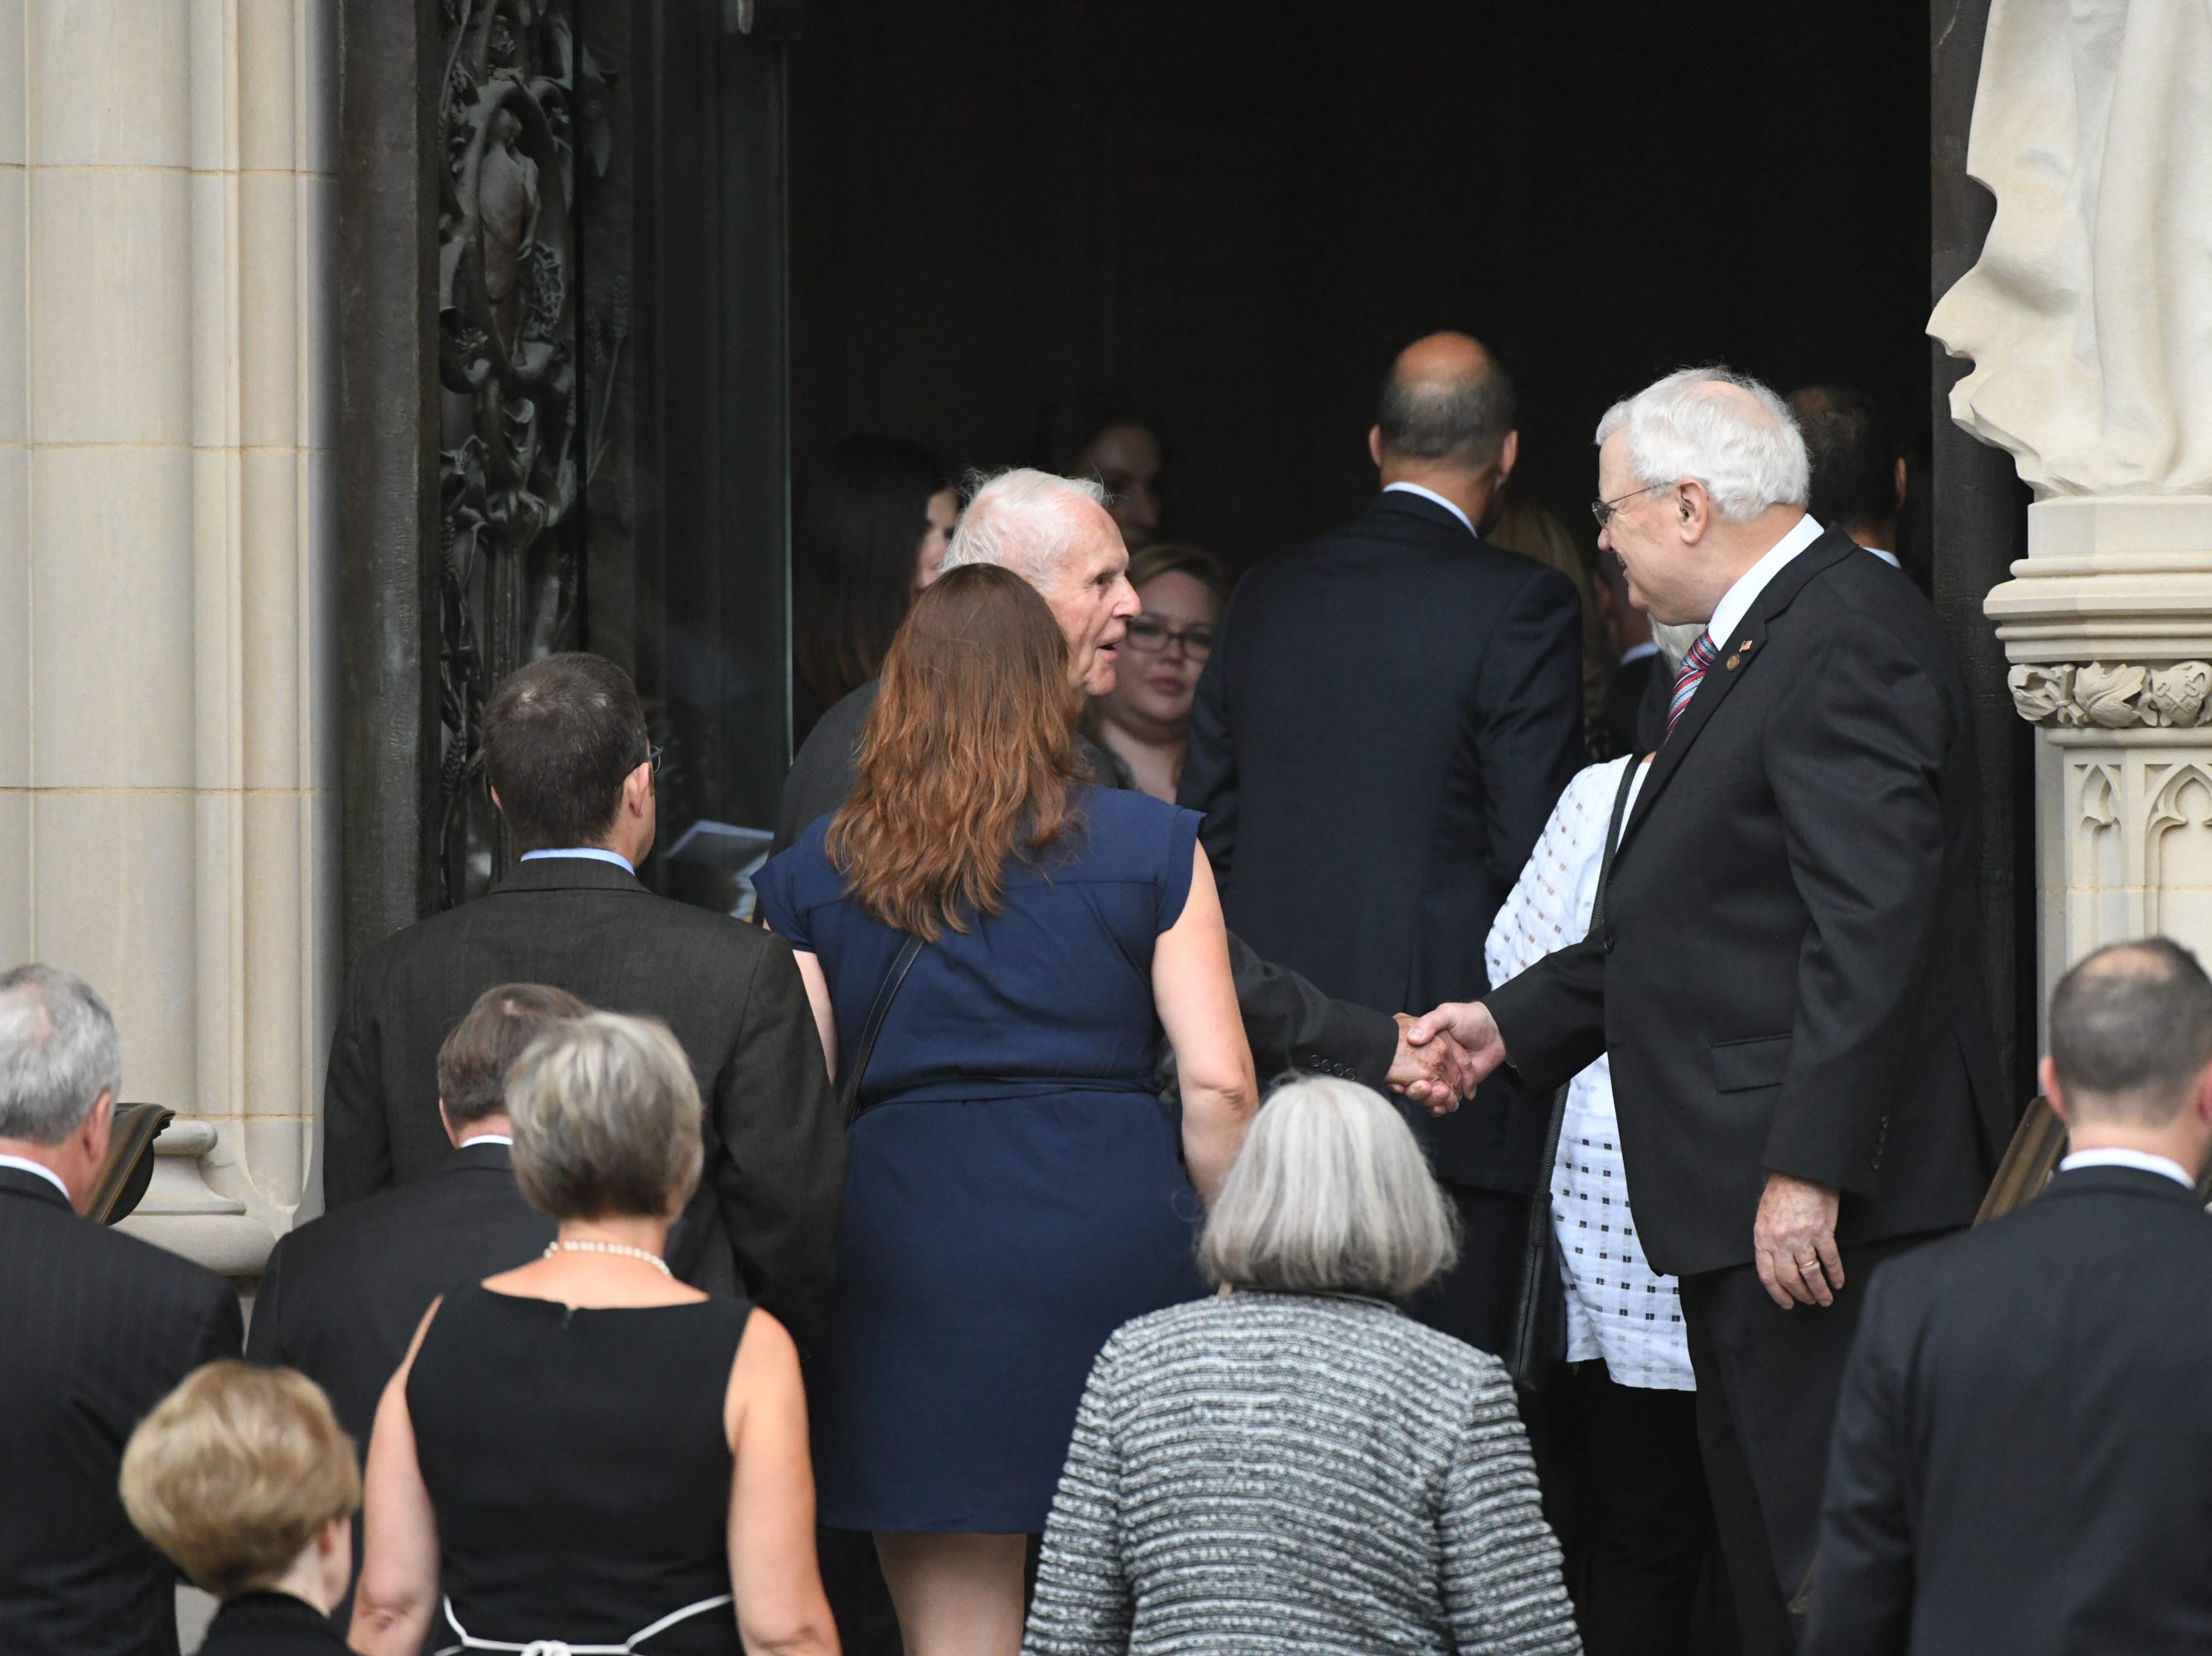 Mourners enter the National Cathedral in Washington for a memorial service for John McCain on Sept. 1, 2018. Sen. McCain on Aug. 25.